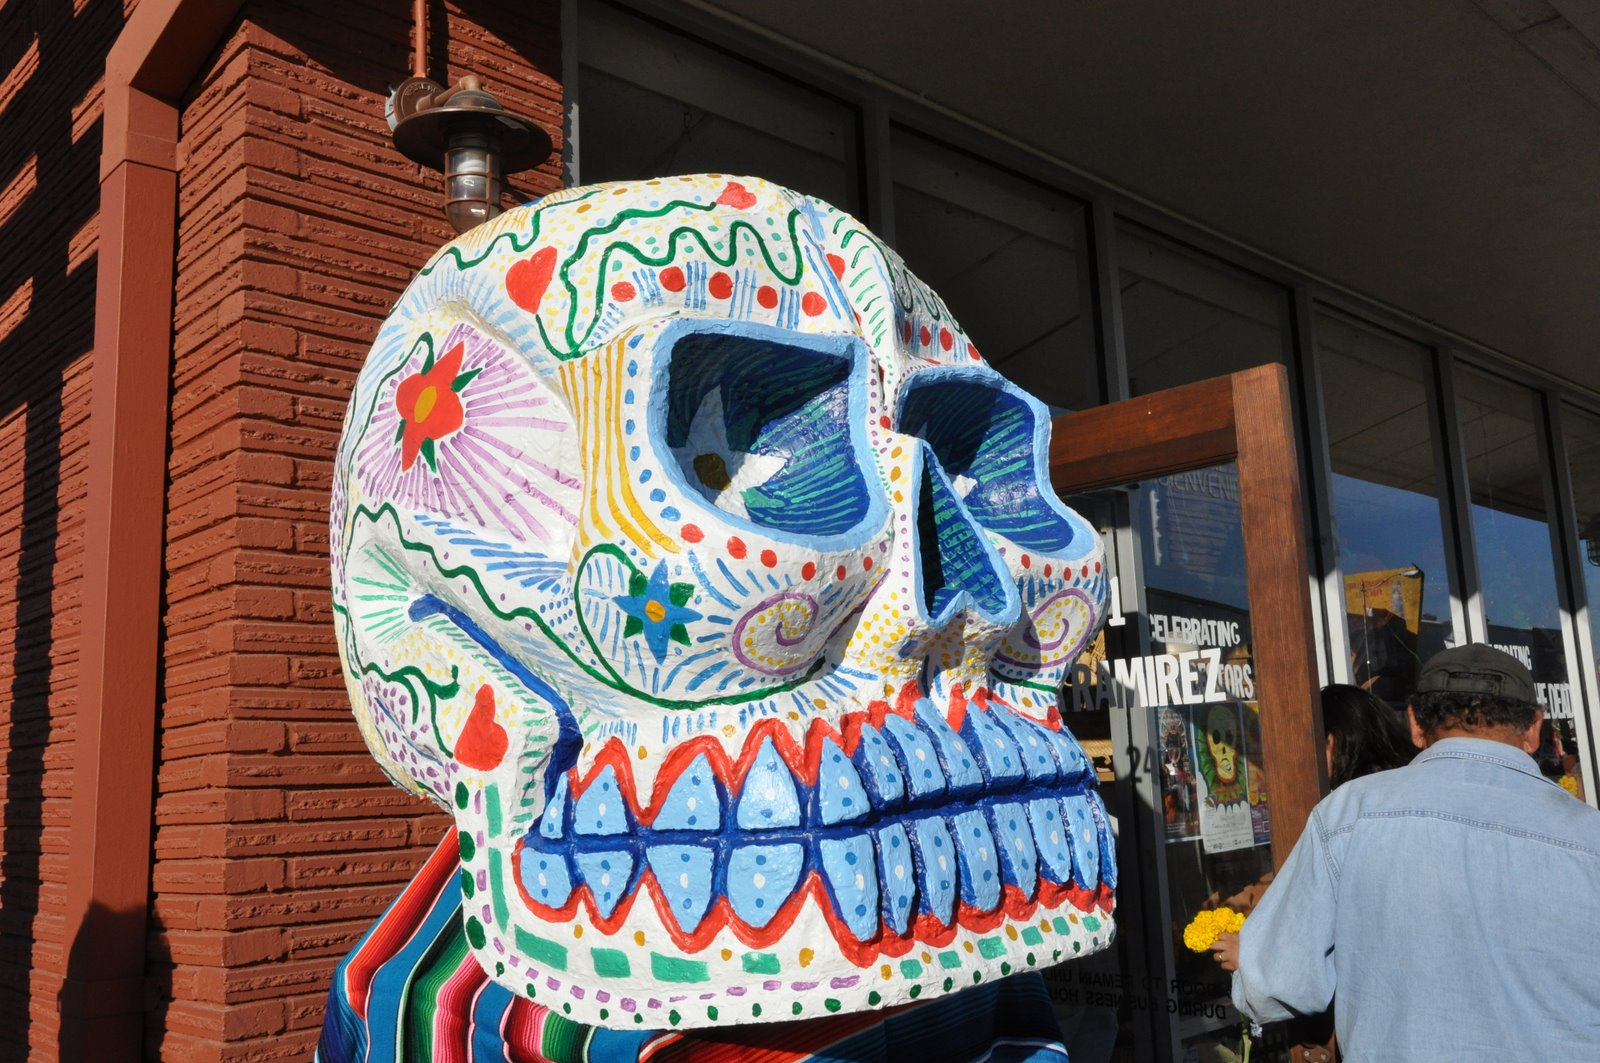 A gigantic, colorful skull